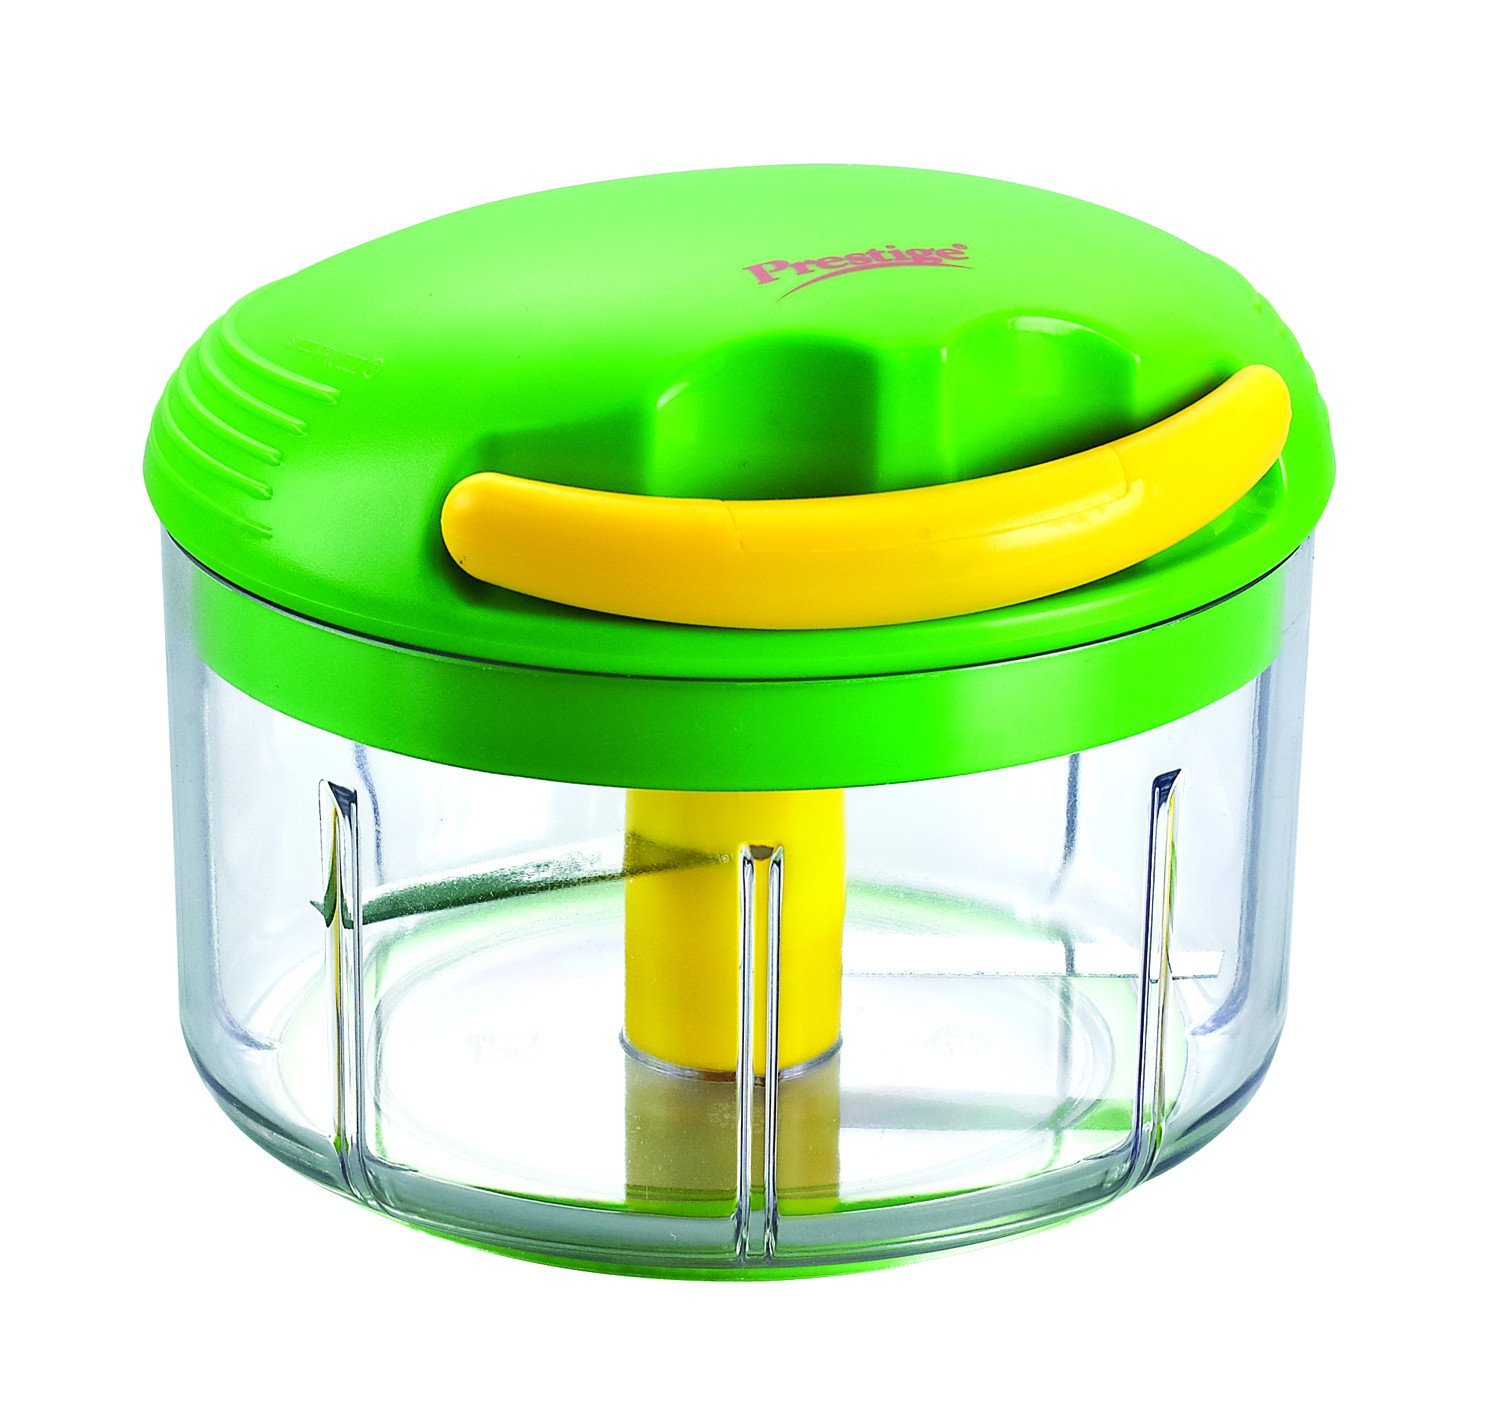 Deals on Prestige 1.0 Vegetable Cutter